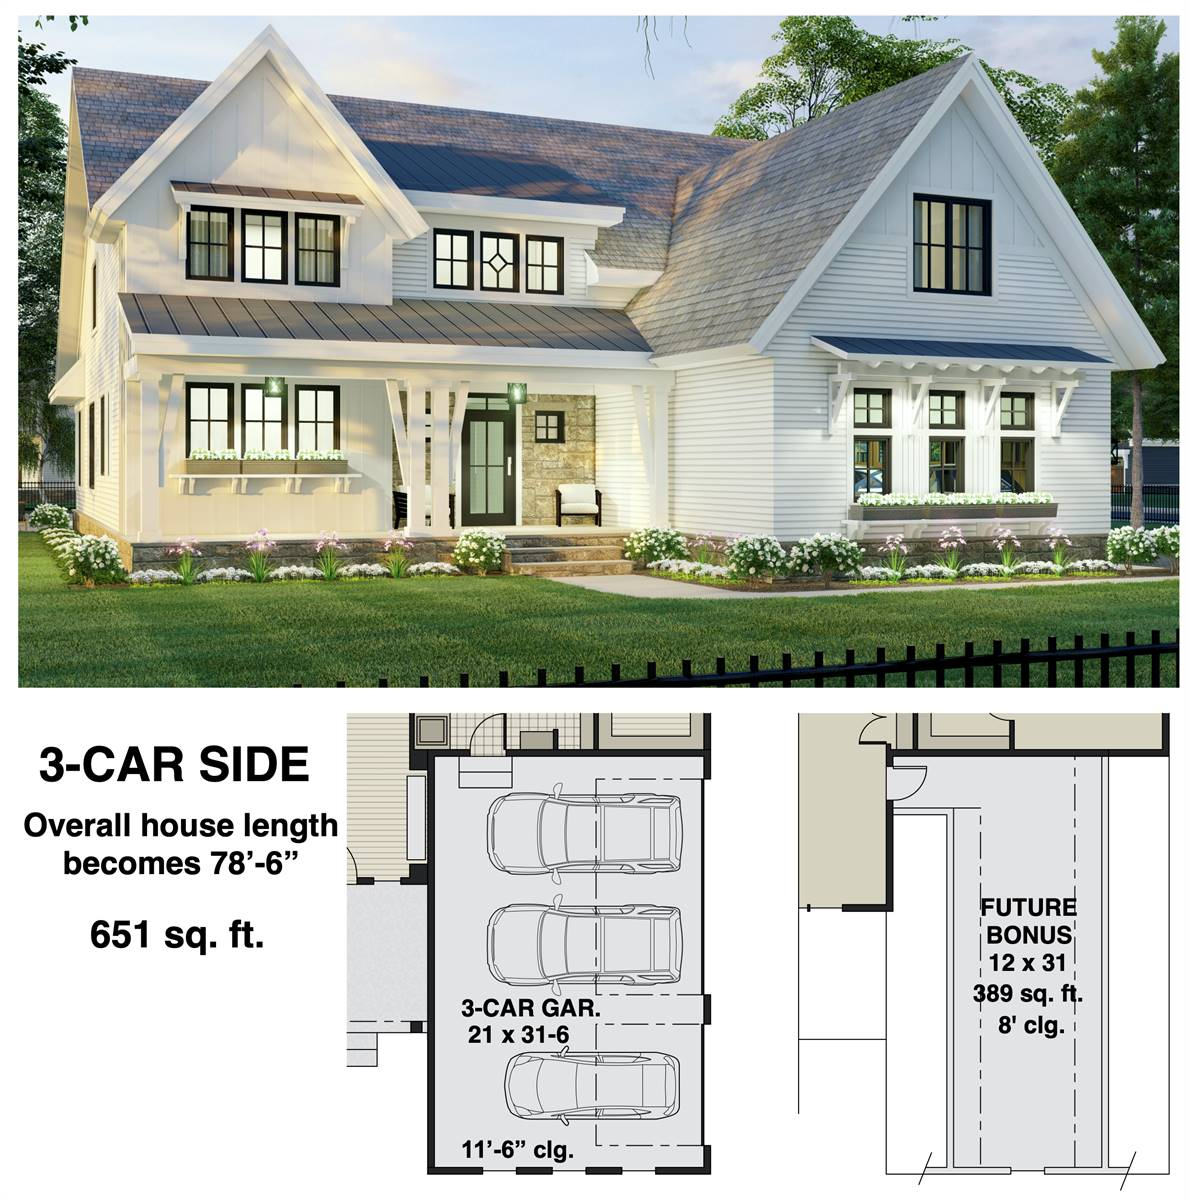 3-Car Side Entry Option